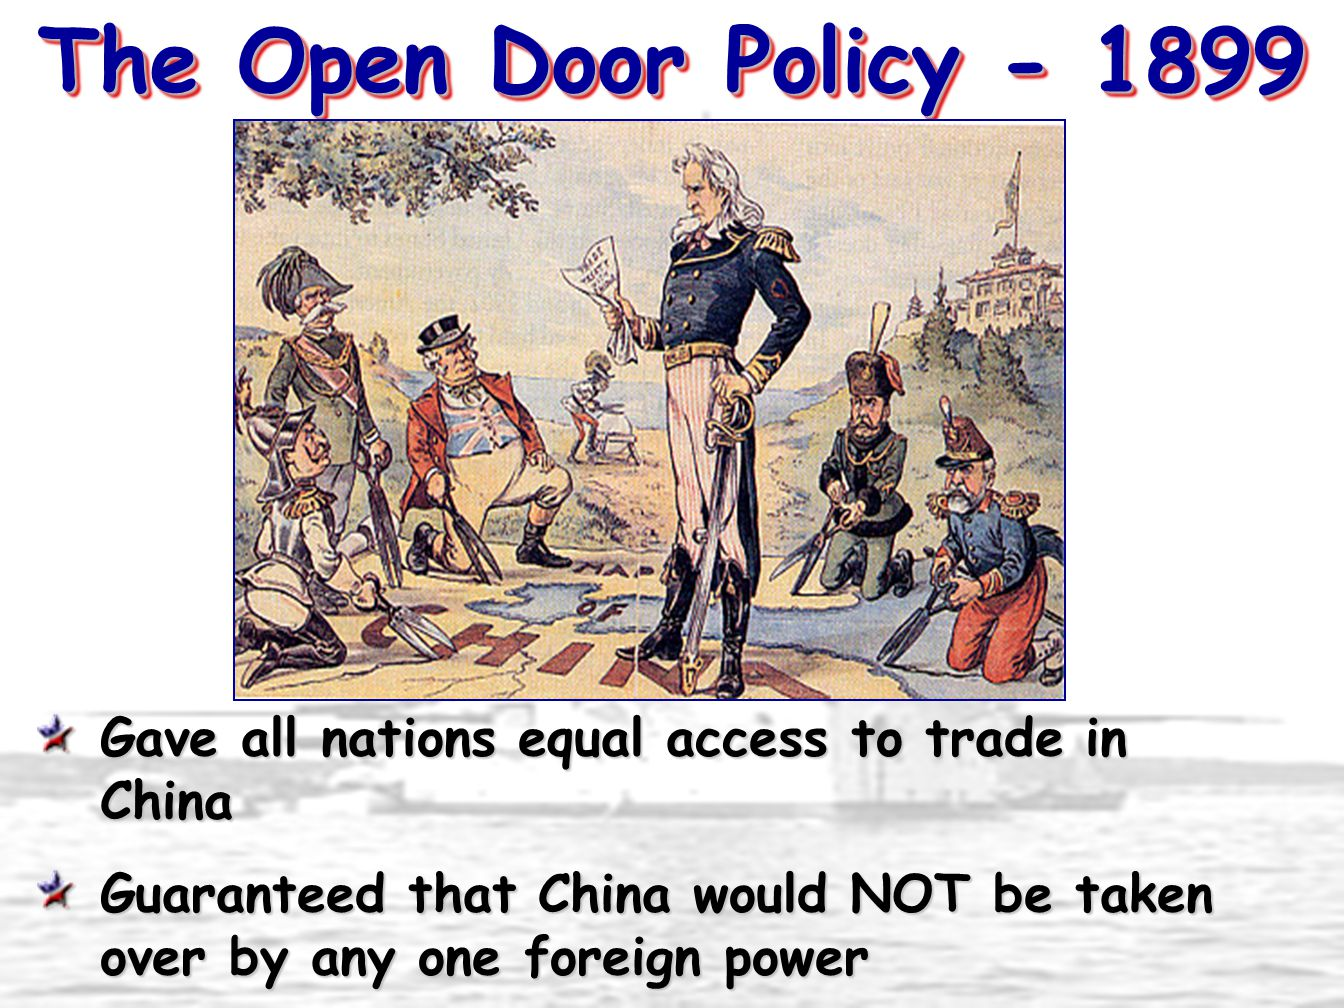 The Open Door Policy - 1899 Gave all nations equal access to trade in China.